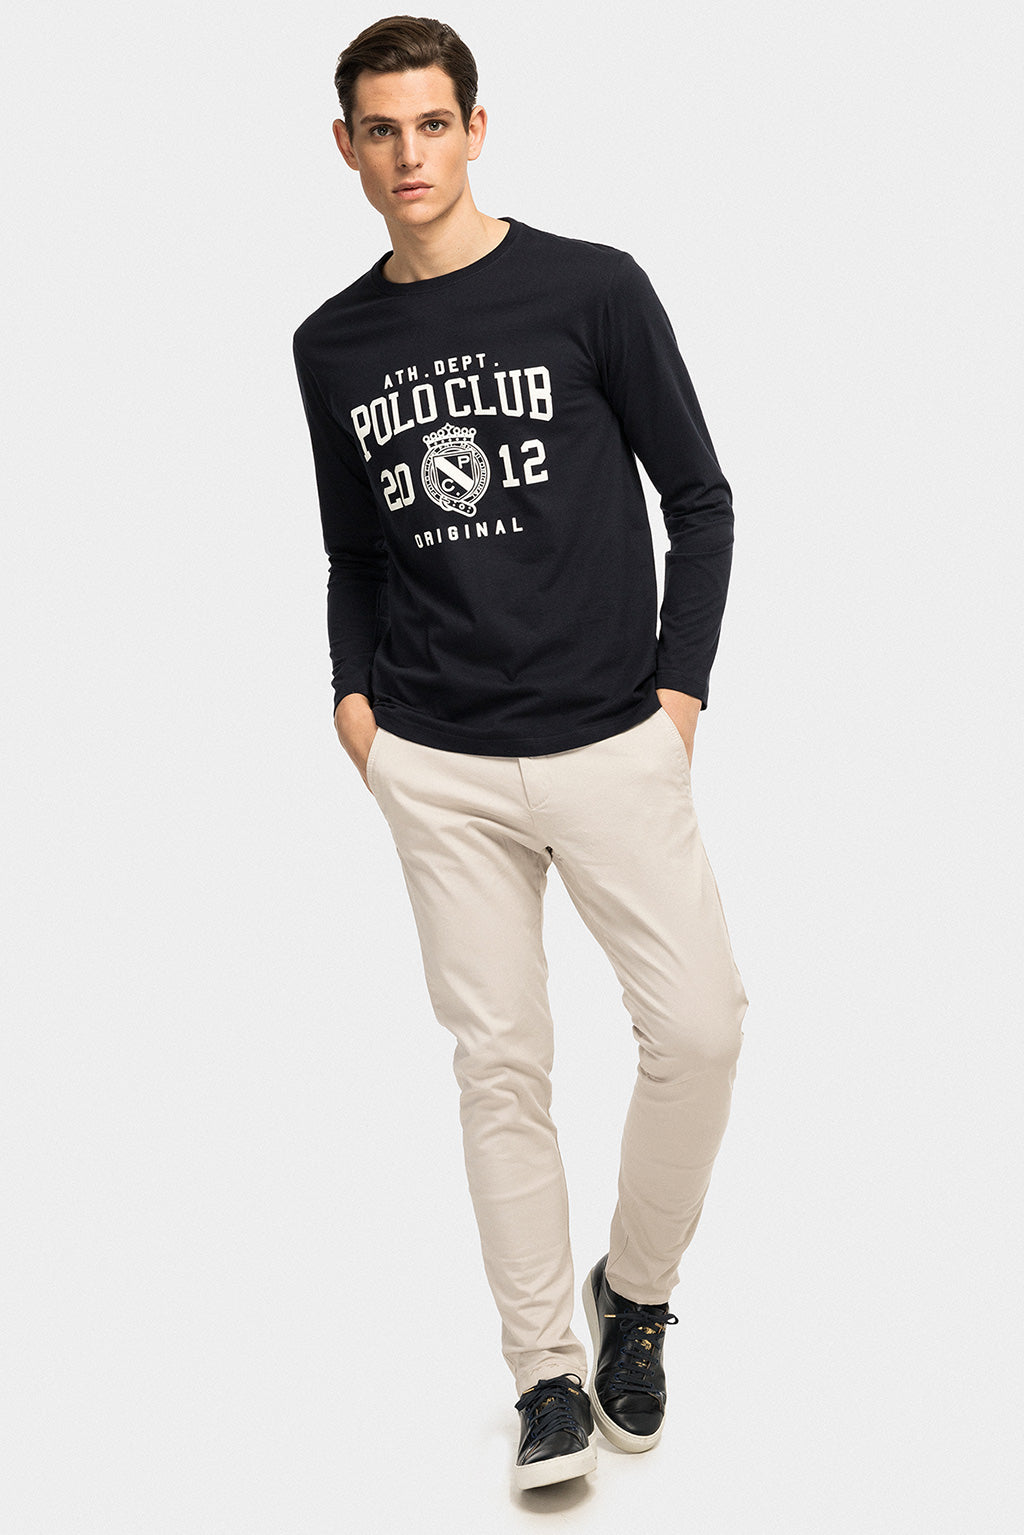 College-inspired navy blue long sleeve tee